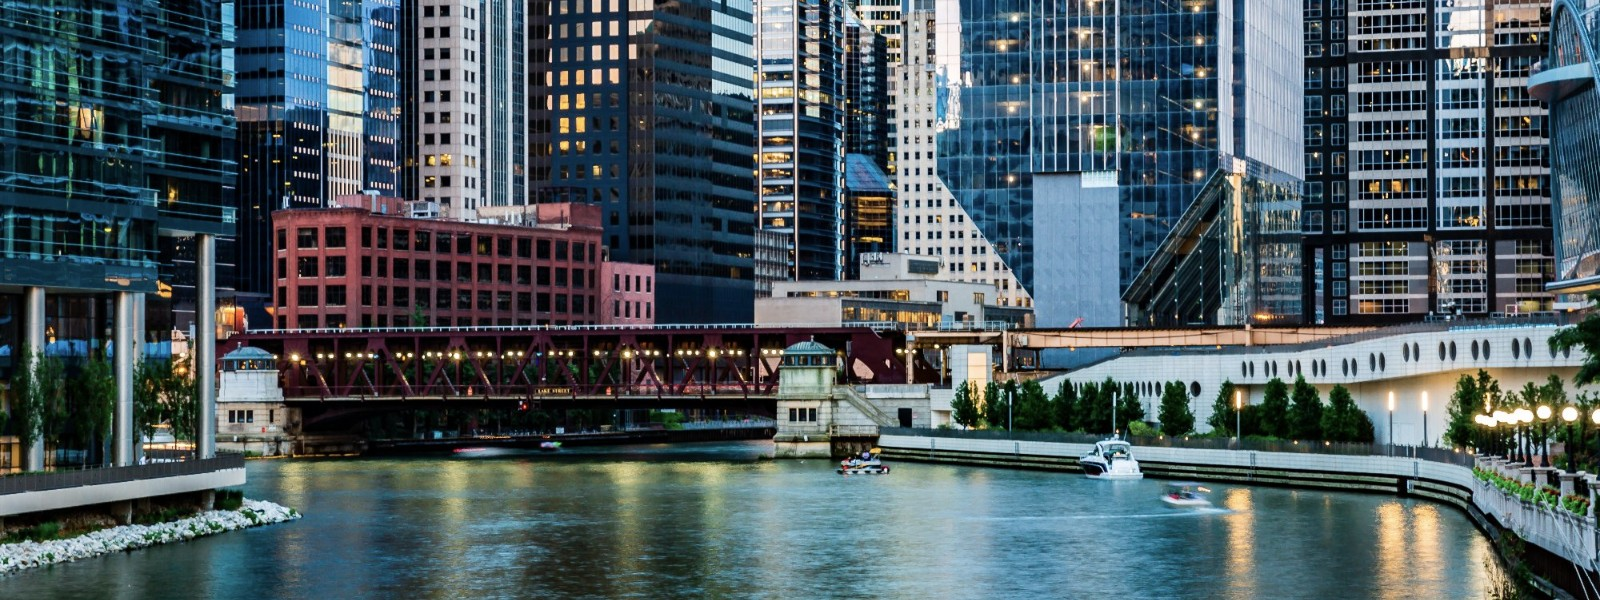 Apartment & Condos For Rent In Chicago | Real Estate Agent ...